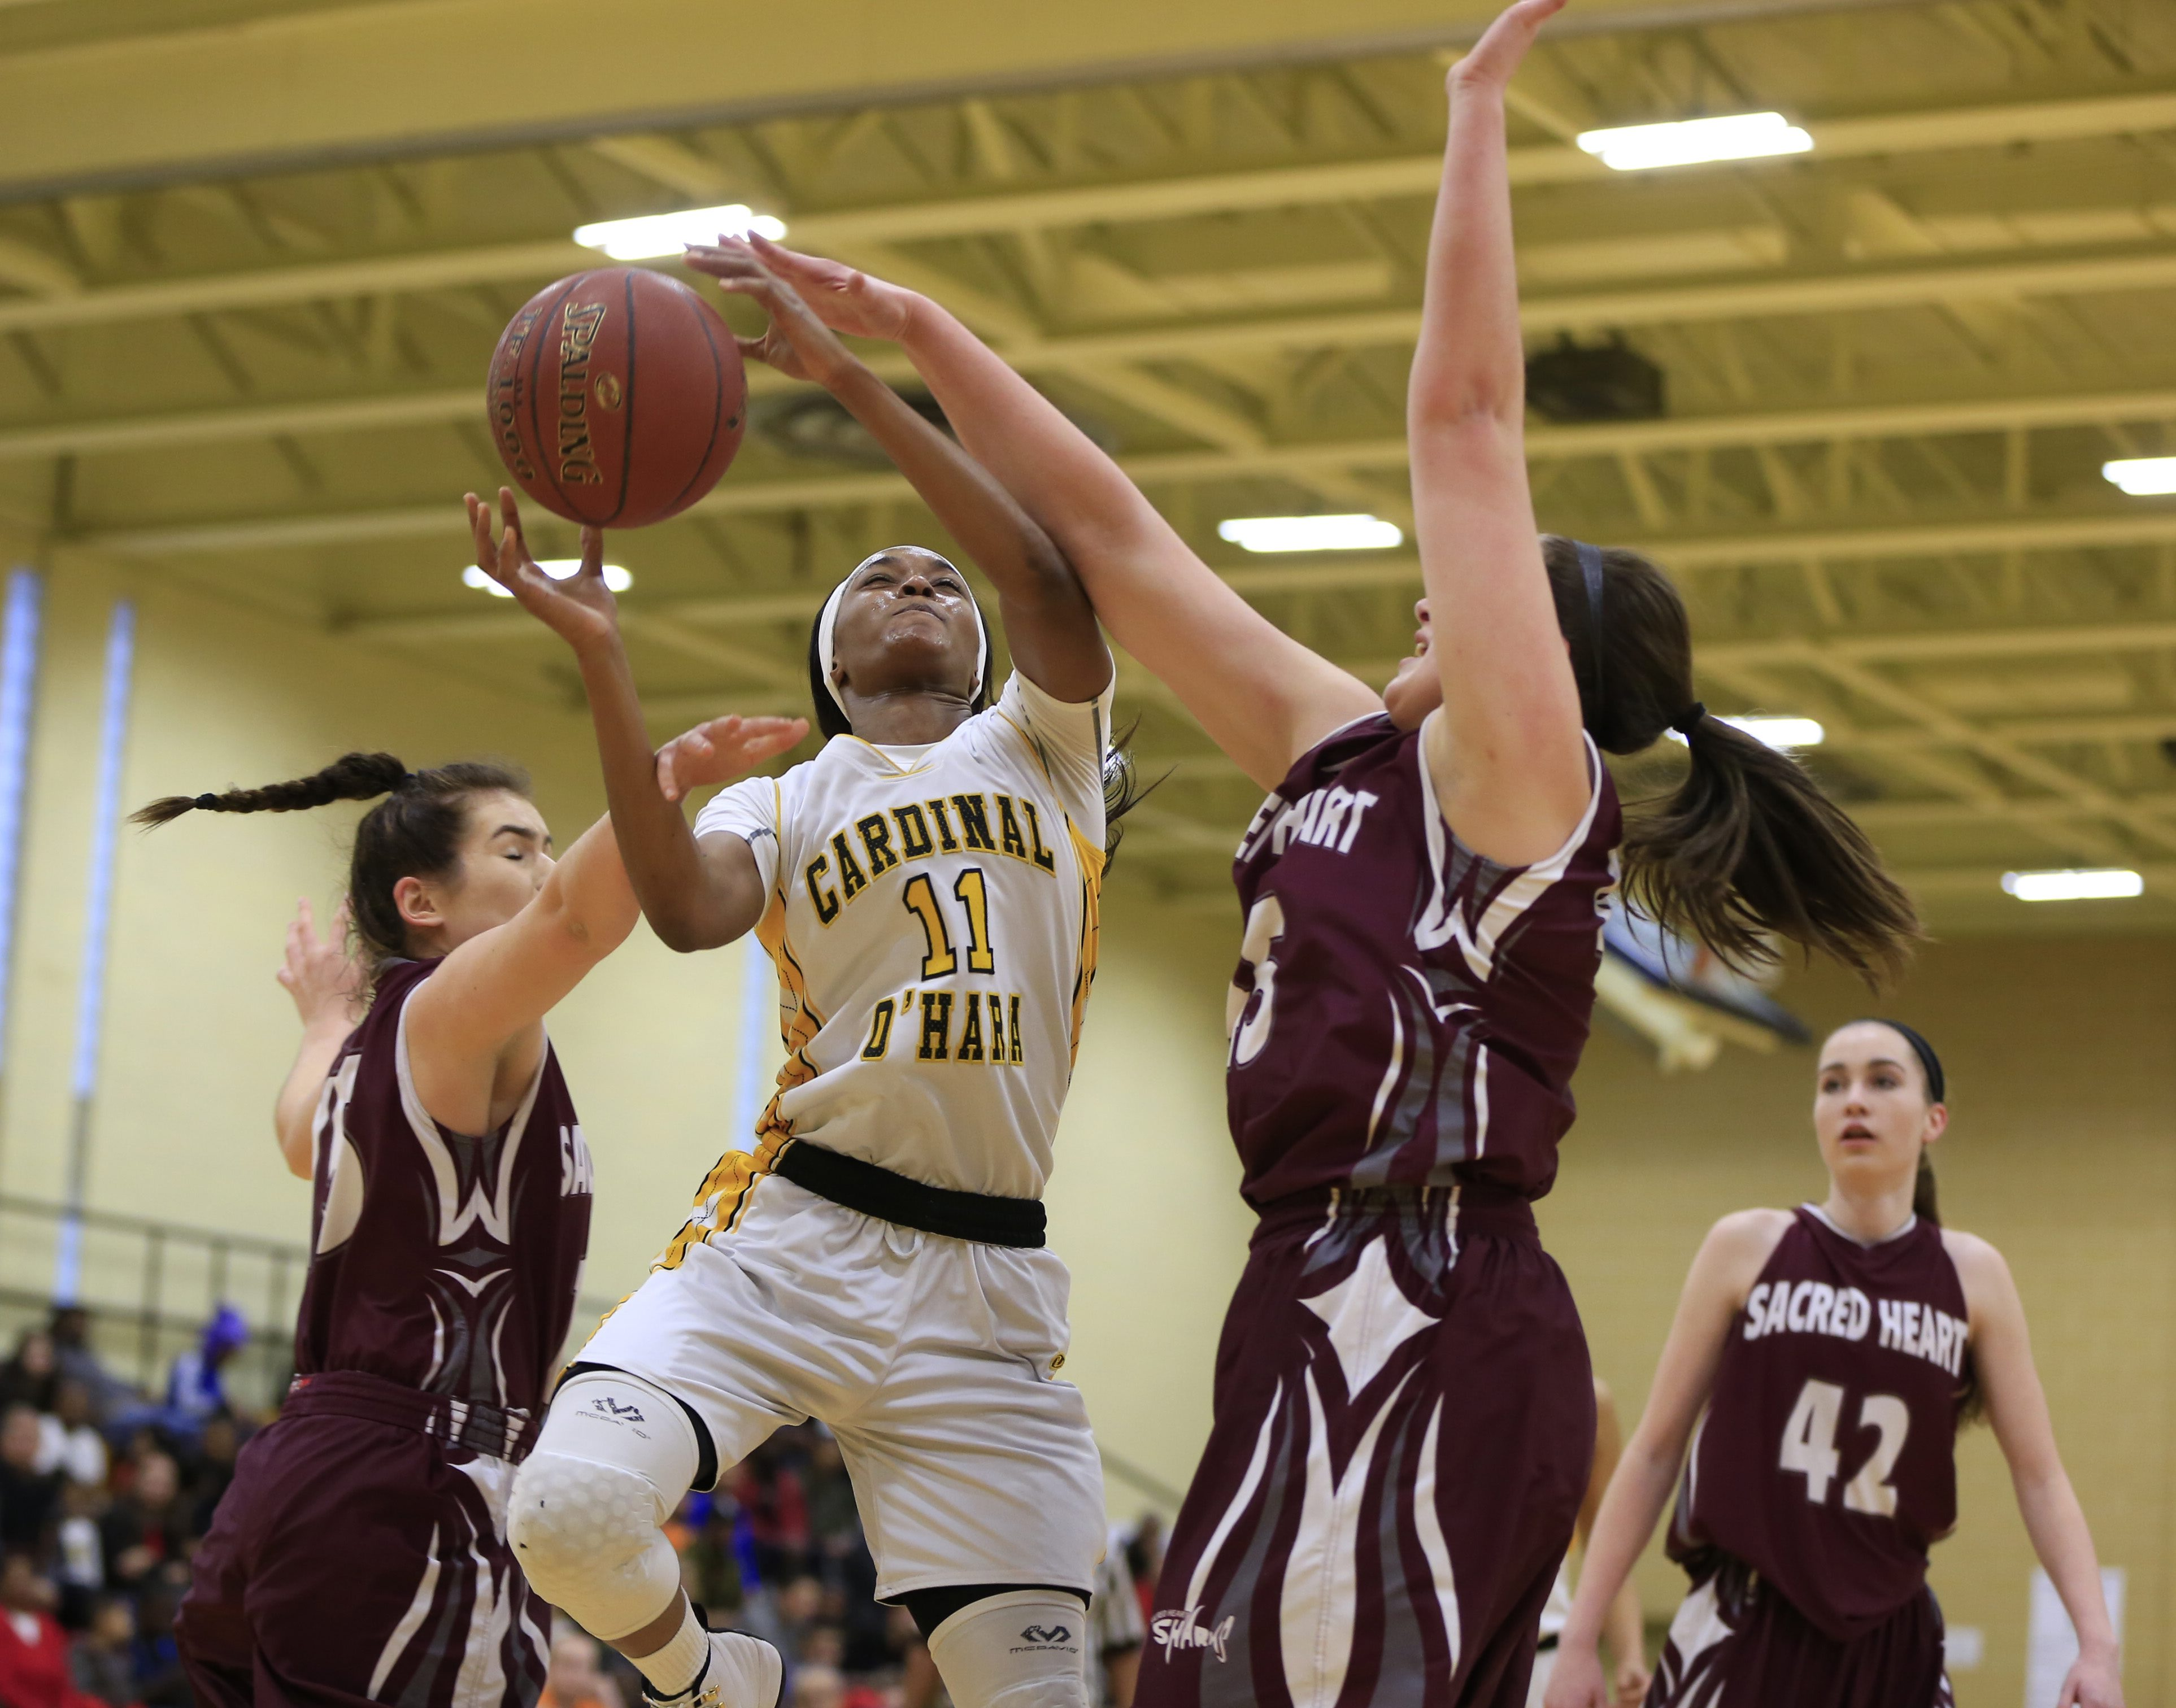 Cardinal O'Hara's Anndea Zeigler leads another strong team for the Hawks. (Harry Scull Jr./Buffalo News file photo)